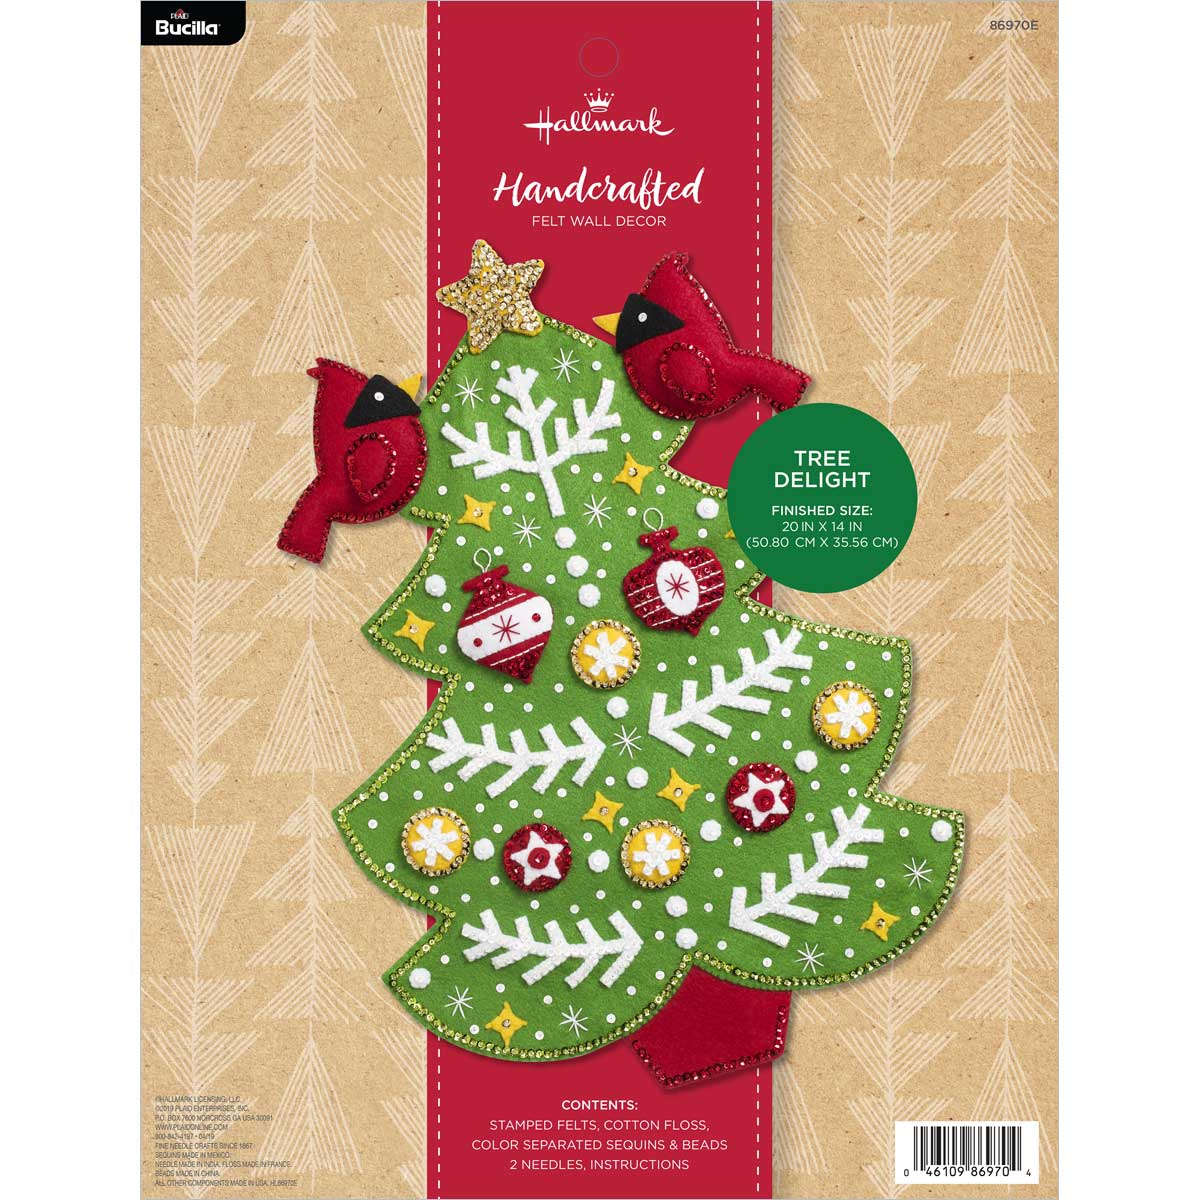 FELT HOME DECOR - TREE DELIGHT WALL HANGING